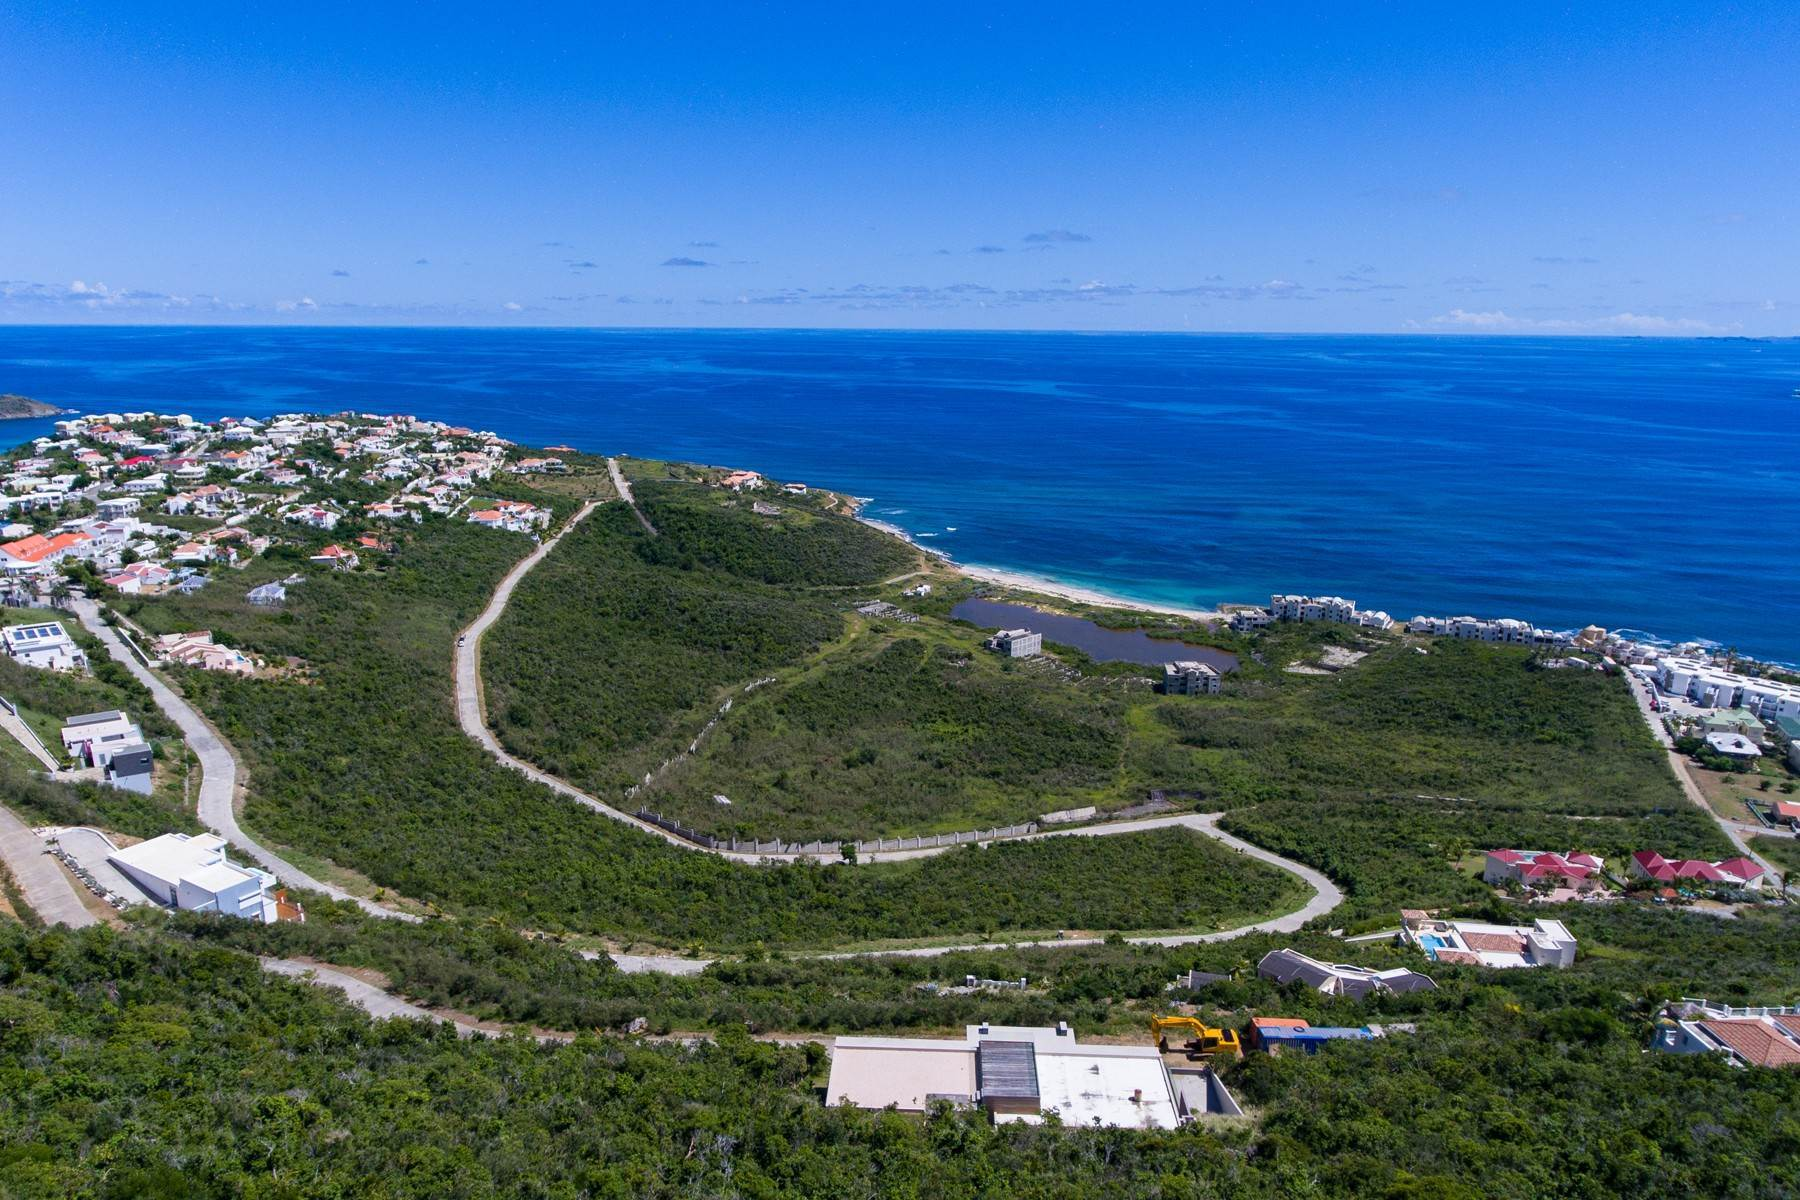 Land for Sale at Red Pond Estates Red Pond, St. Maarten